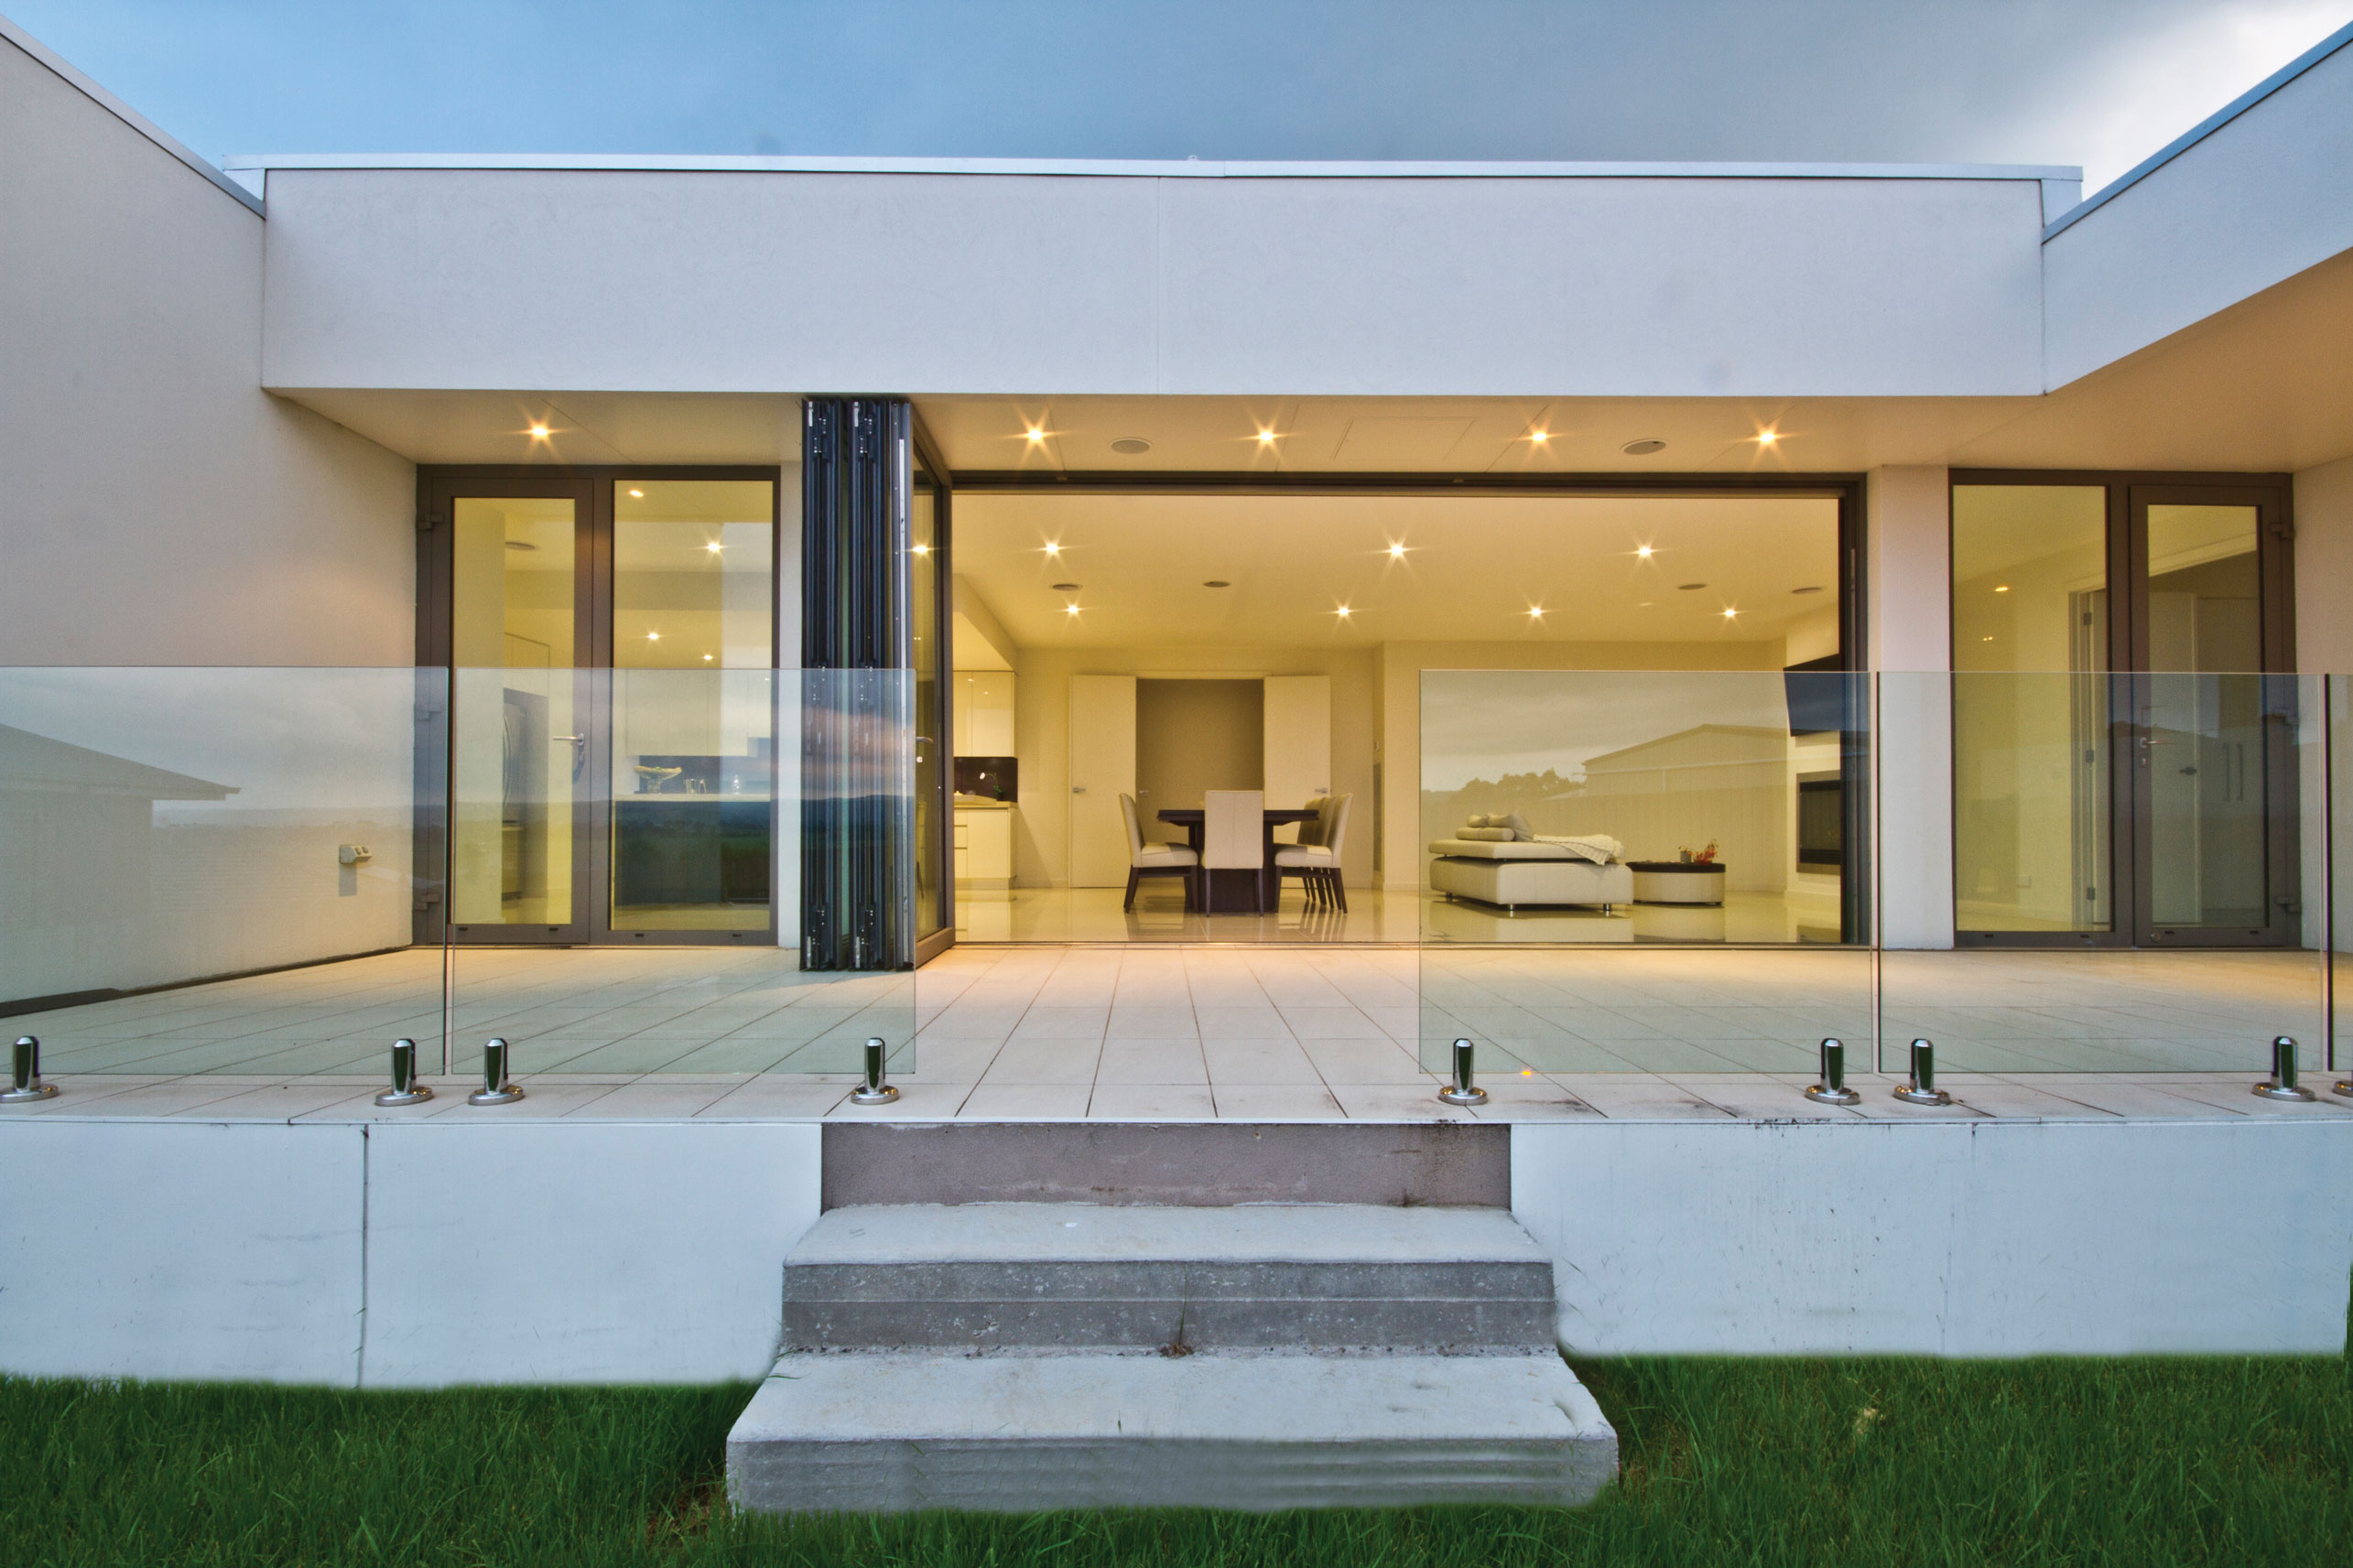 Folding-patio-doors-turn-a-garage-into-the-ultimate-party-room